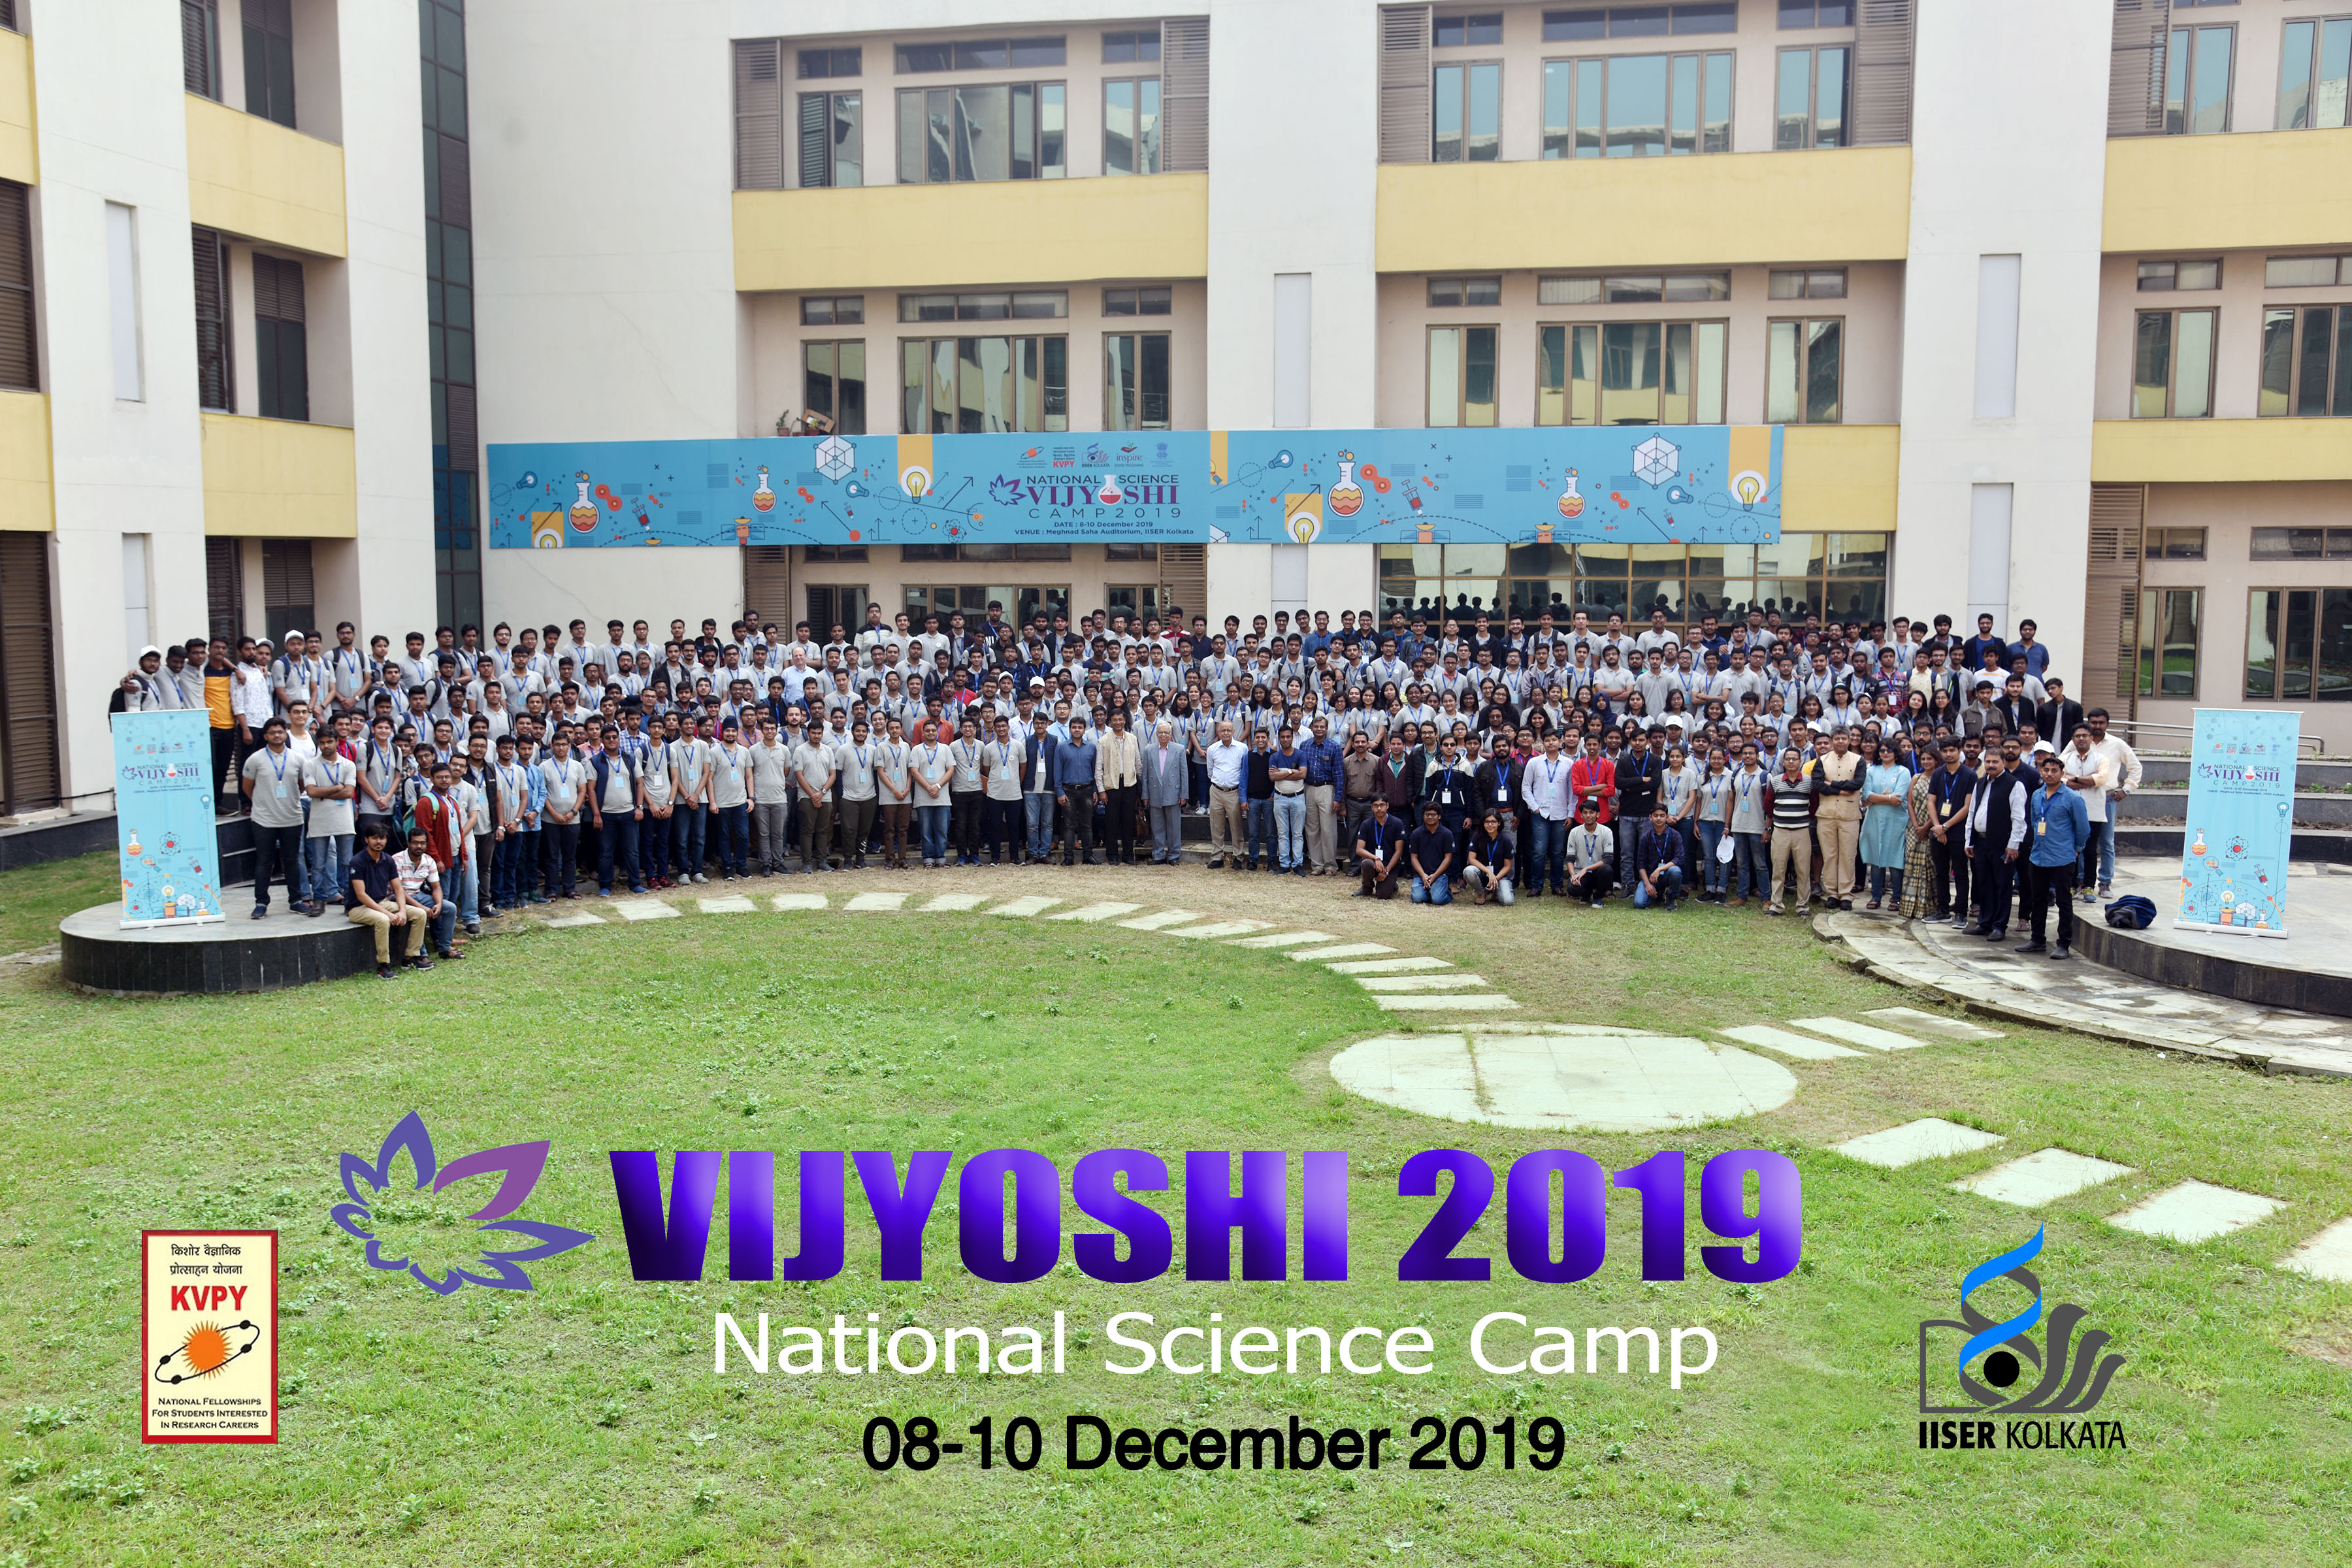 Vijyoshi Science Camp